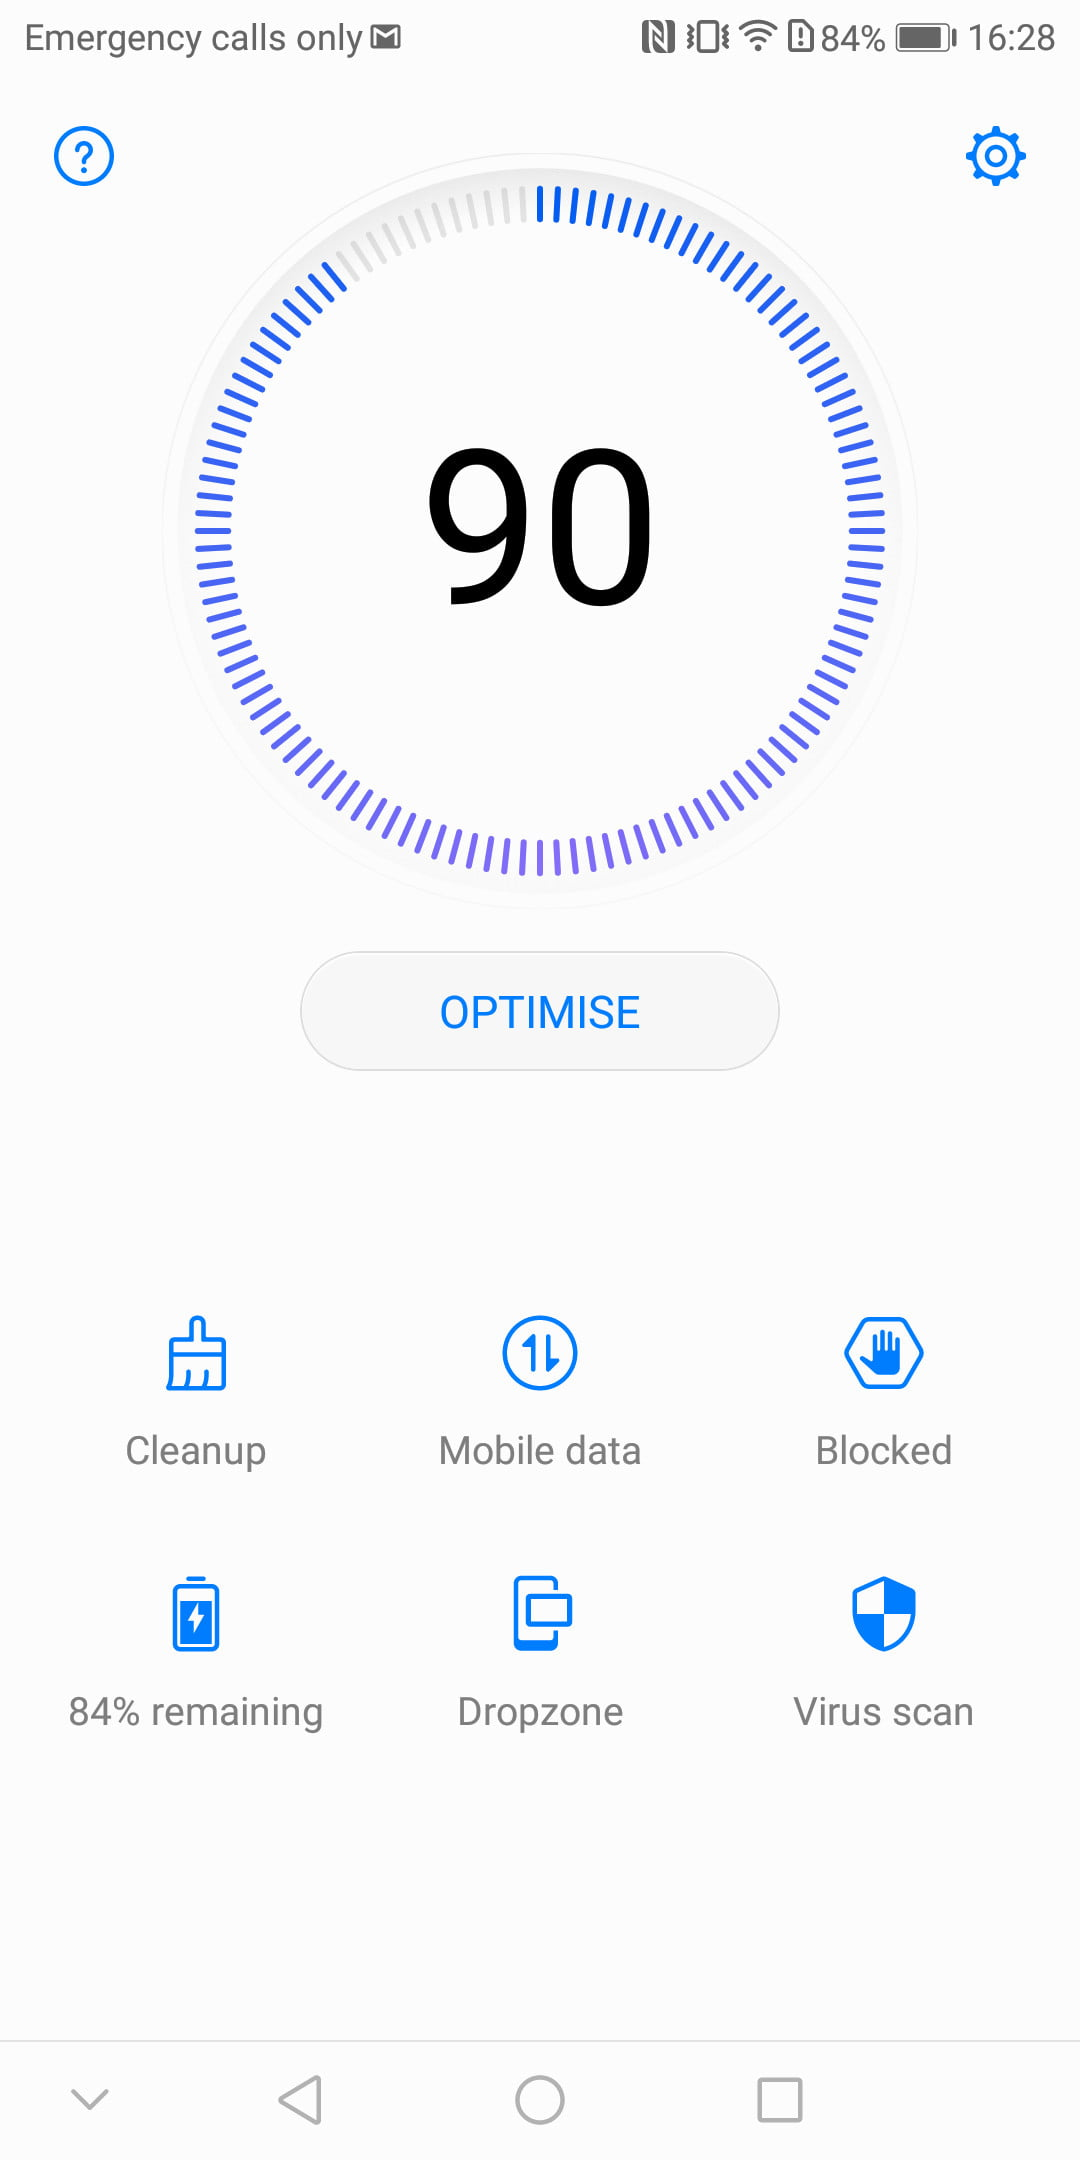 How To Maximize The Huawei Mate 10 Pros Battery Life Digital Trends Common Symbols Include A Cell Switches Meters Power Pro